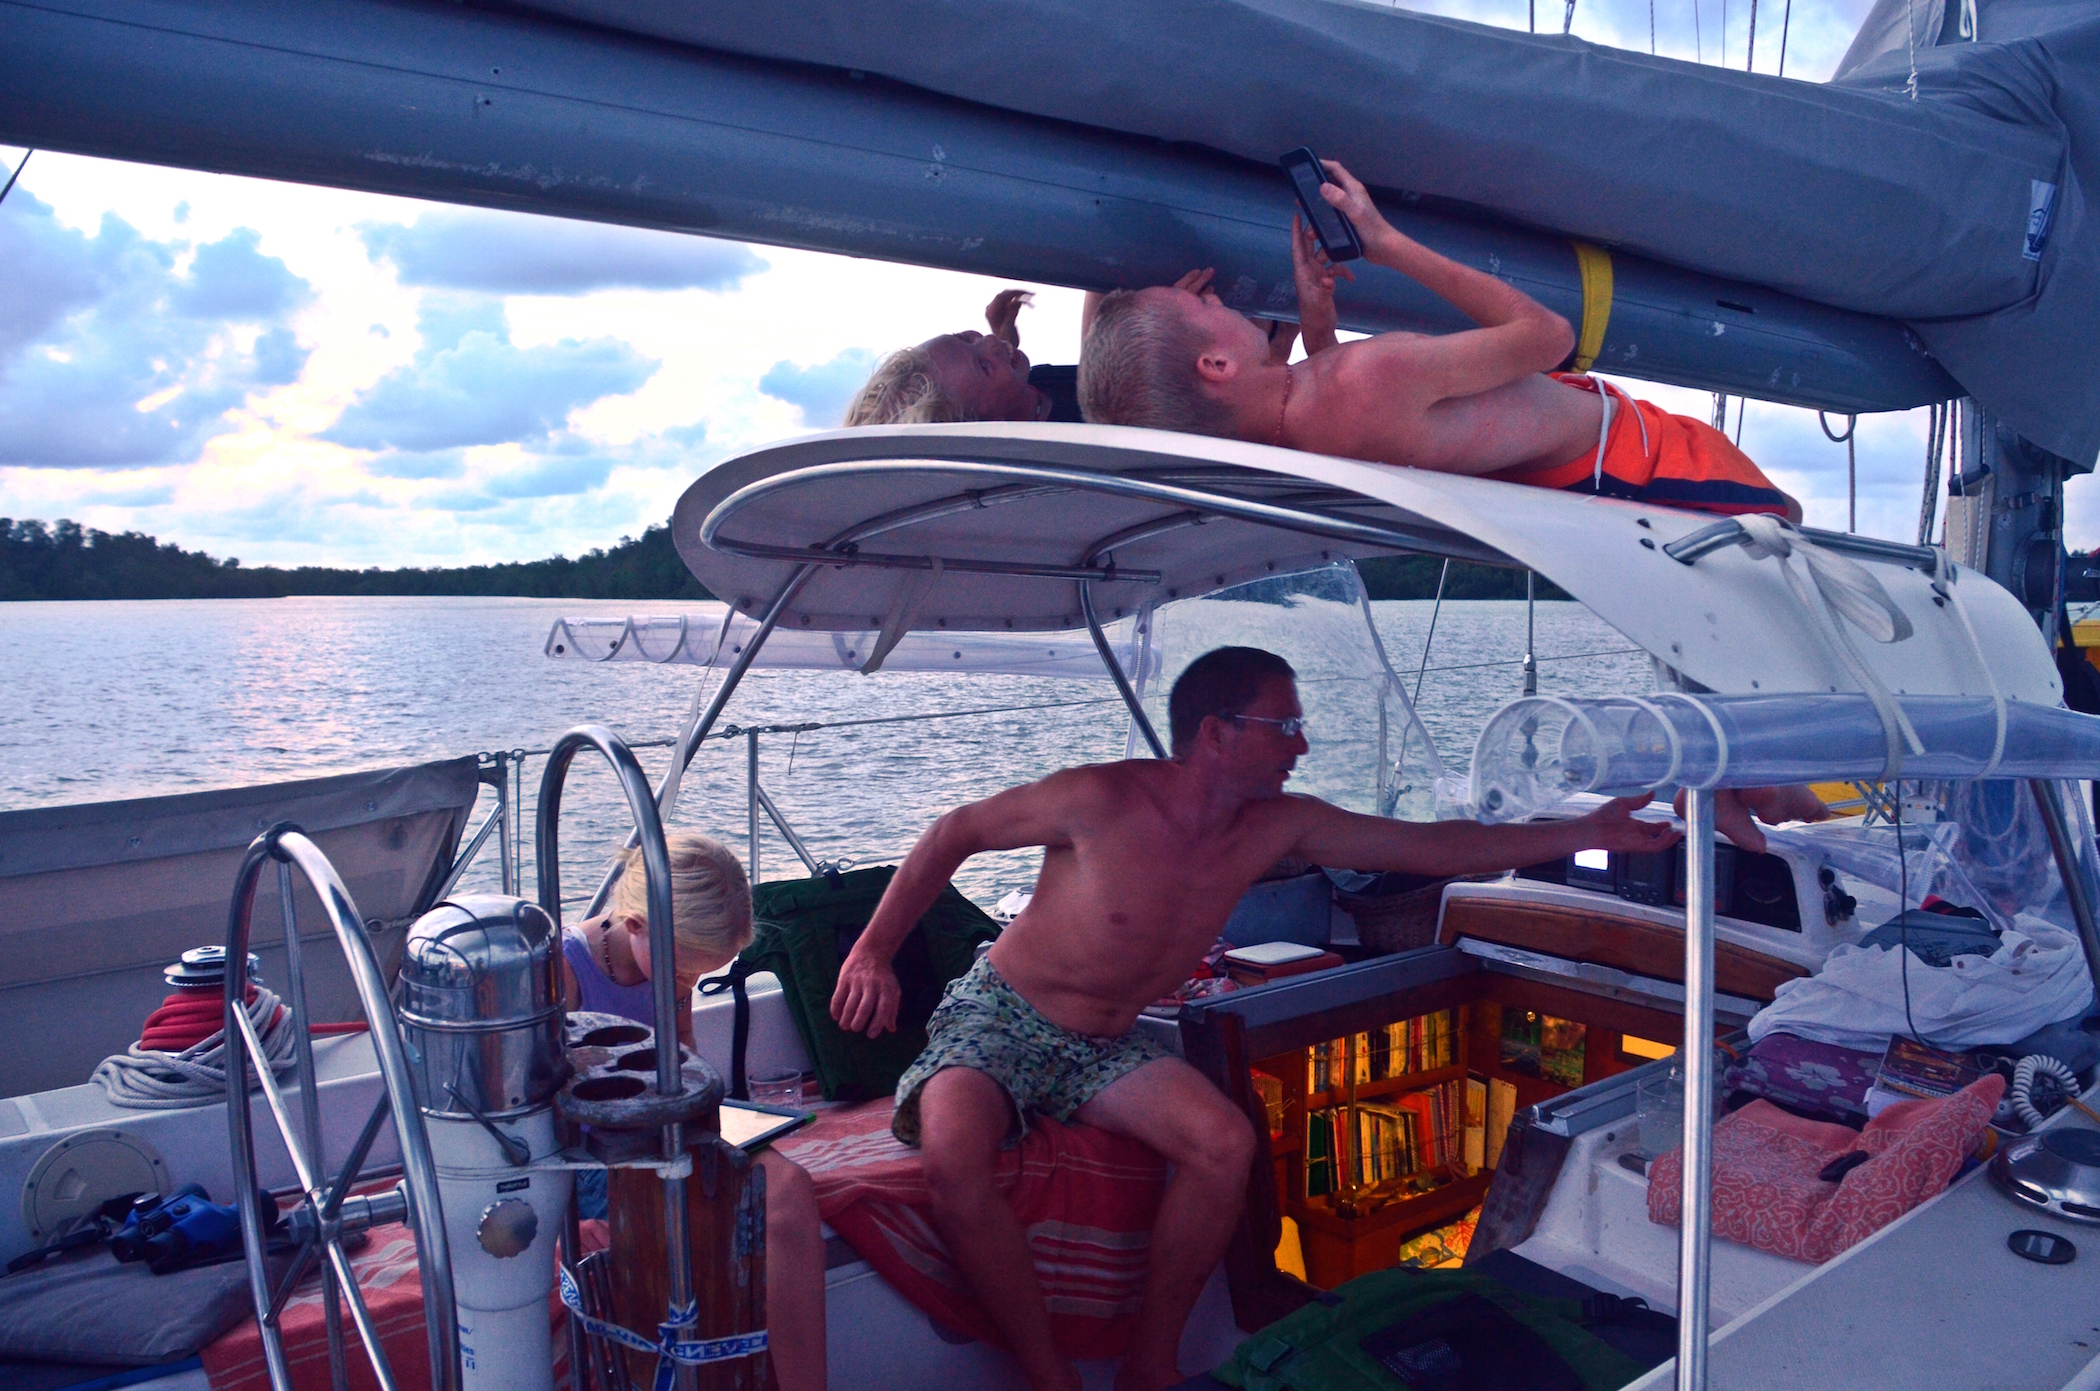 Just chilling out on Totem - an evening at anchor during transit up the Malay peninsula - www.sailingtotem.com - 'On the Wind' Sailing Podcast: Episode #175